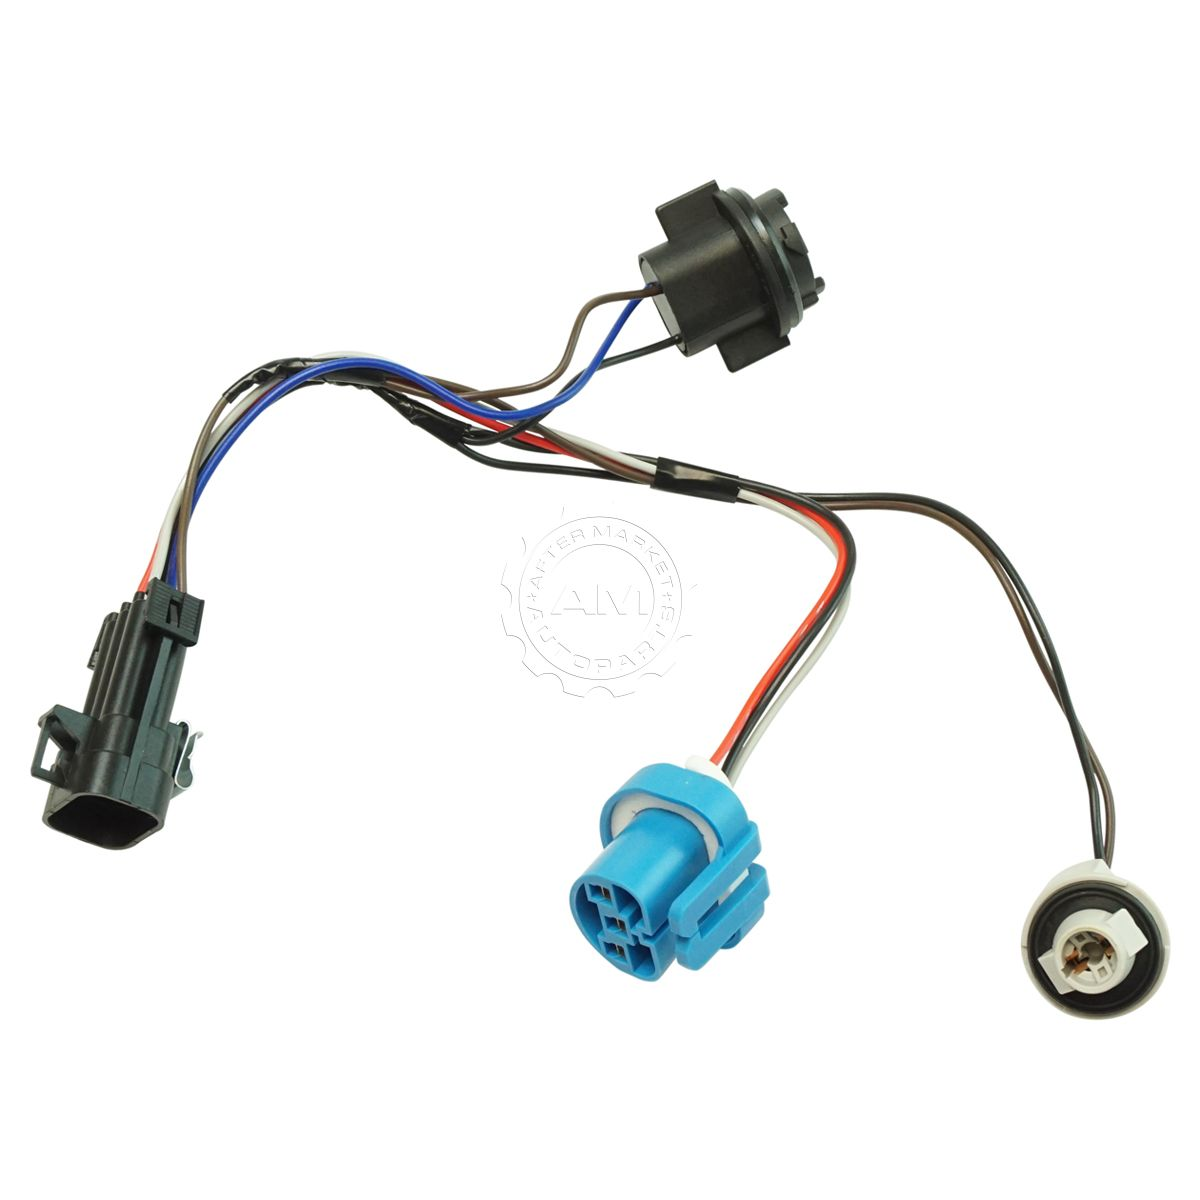 dorman headlight wiring harness or side for chevy cobalt pontiac g5 rh ebay com Wiring Harness Diagram Wiring Harness Diagram